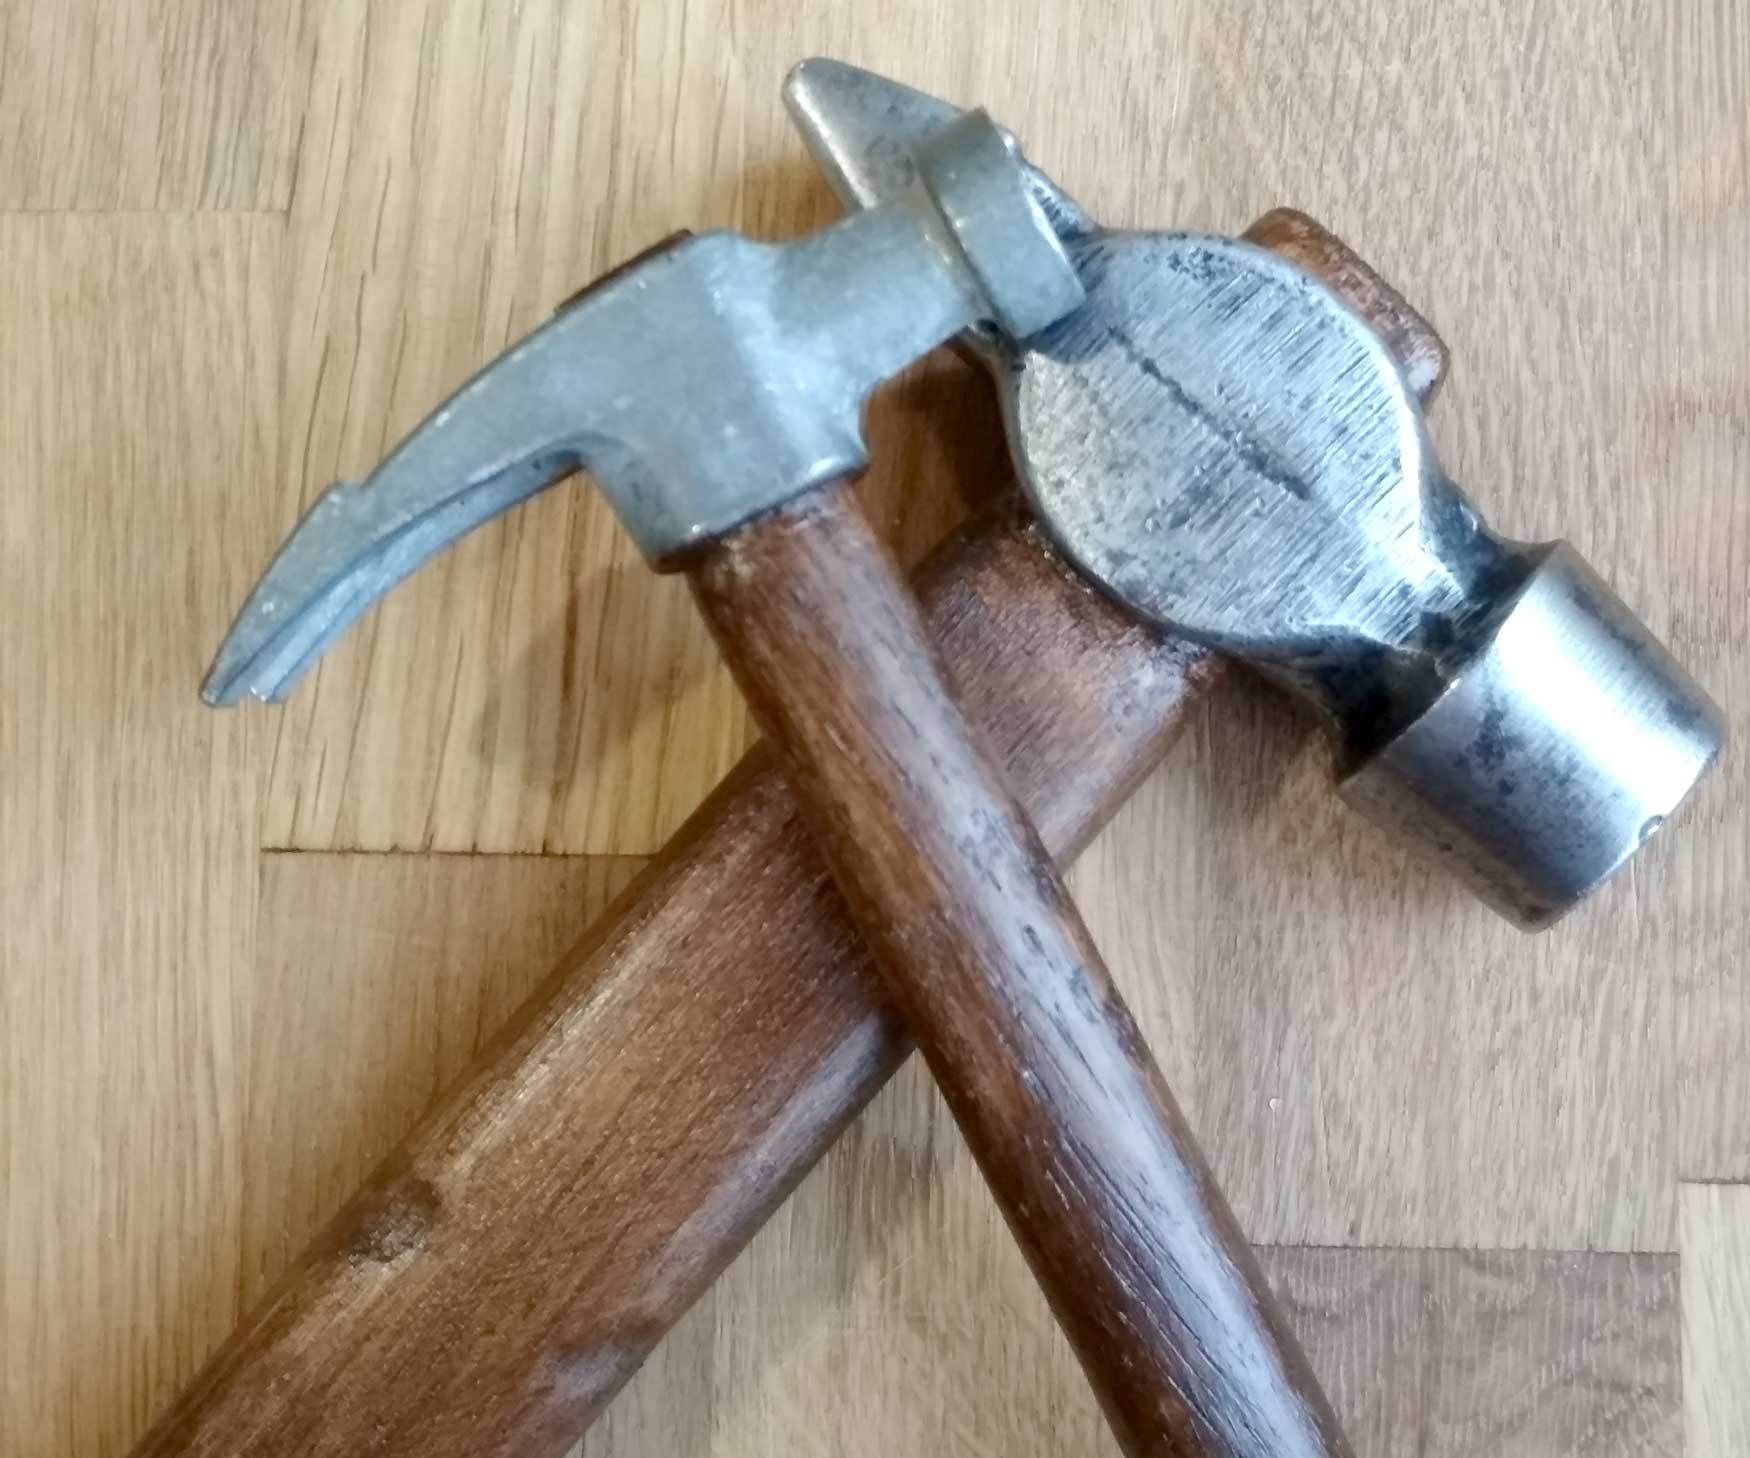 New Handles for Two Hammers